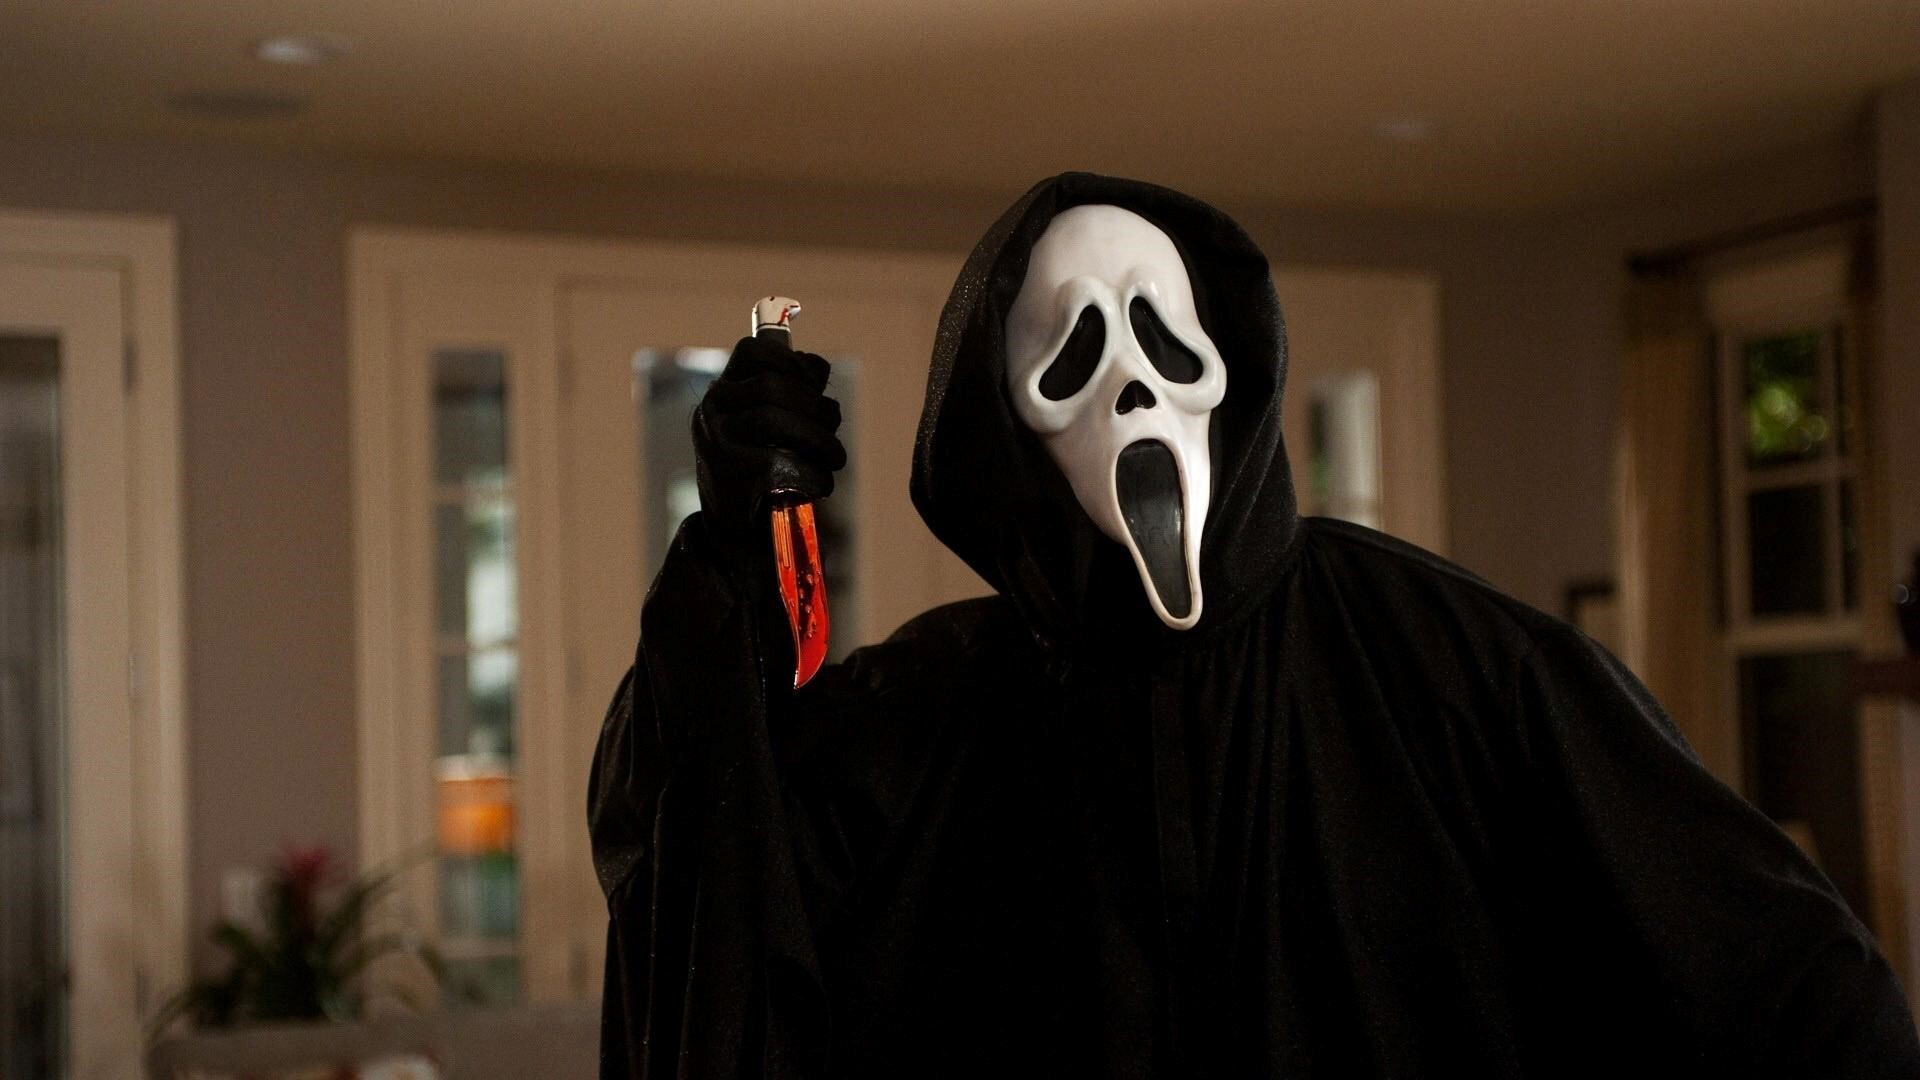 ghostface from the scream movies wallpaper | hd wallpapers